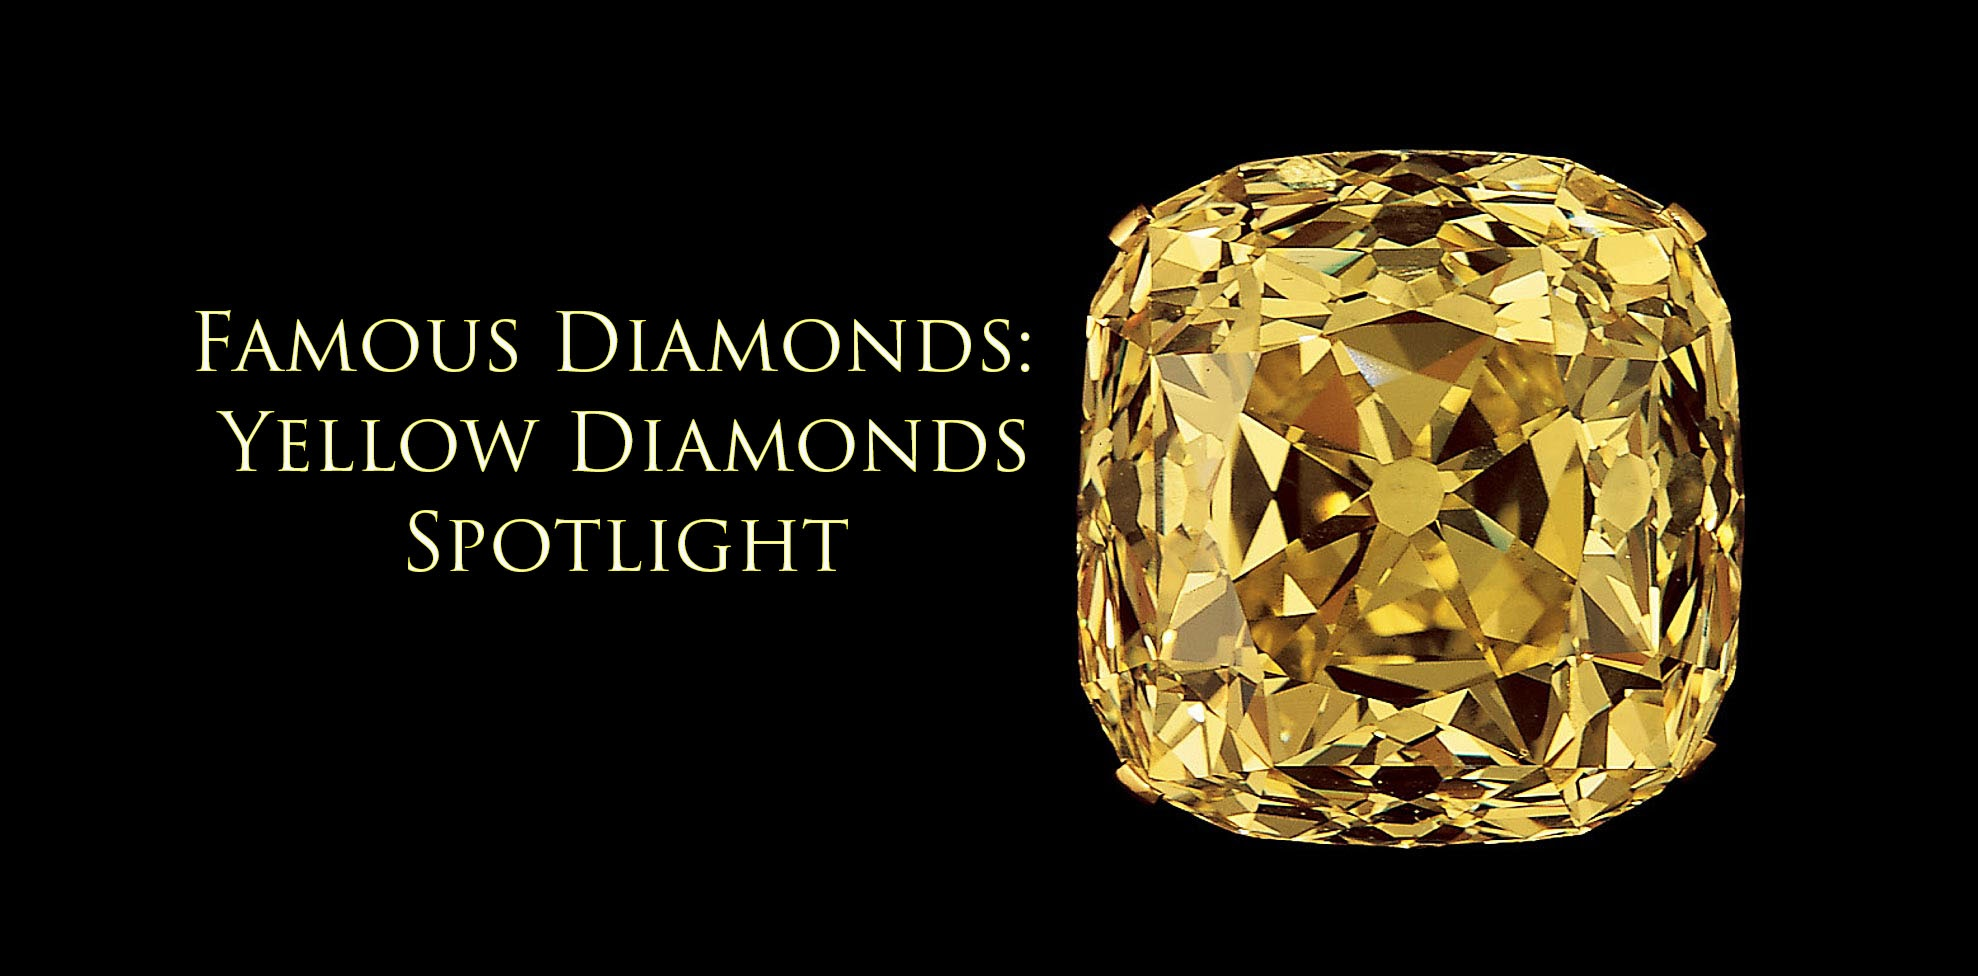 yellow_diamonds_spotlight.jpg